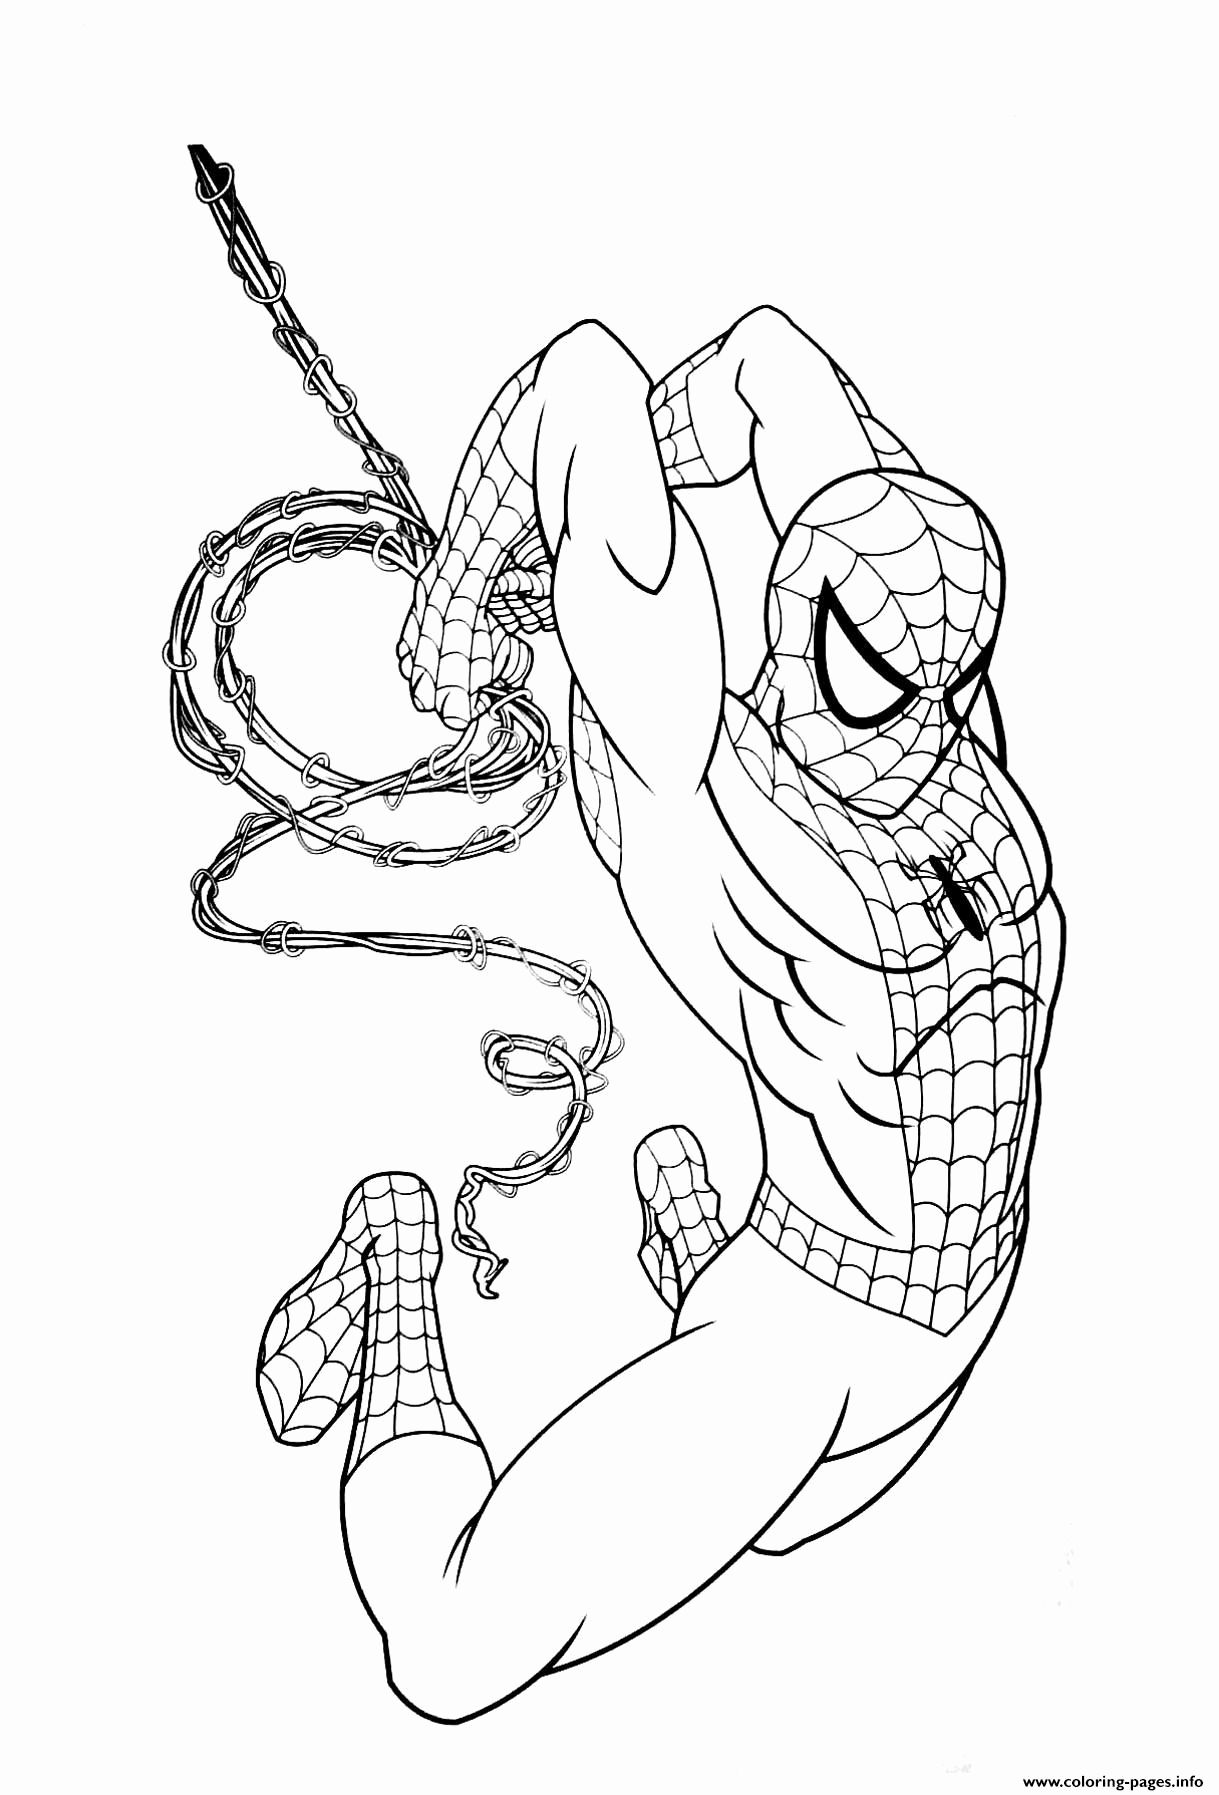 Avengers Spiderman Civil War Coloring Pages For Kids Avengers Coloring Spiderman Coloring Superhero Coloring Pages